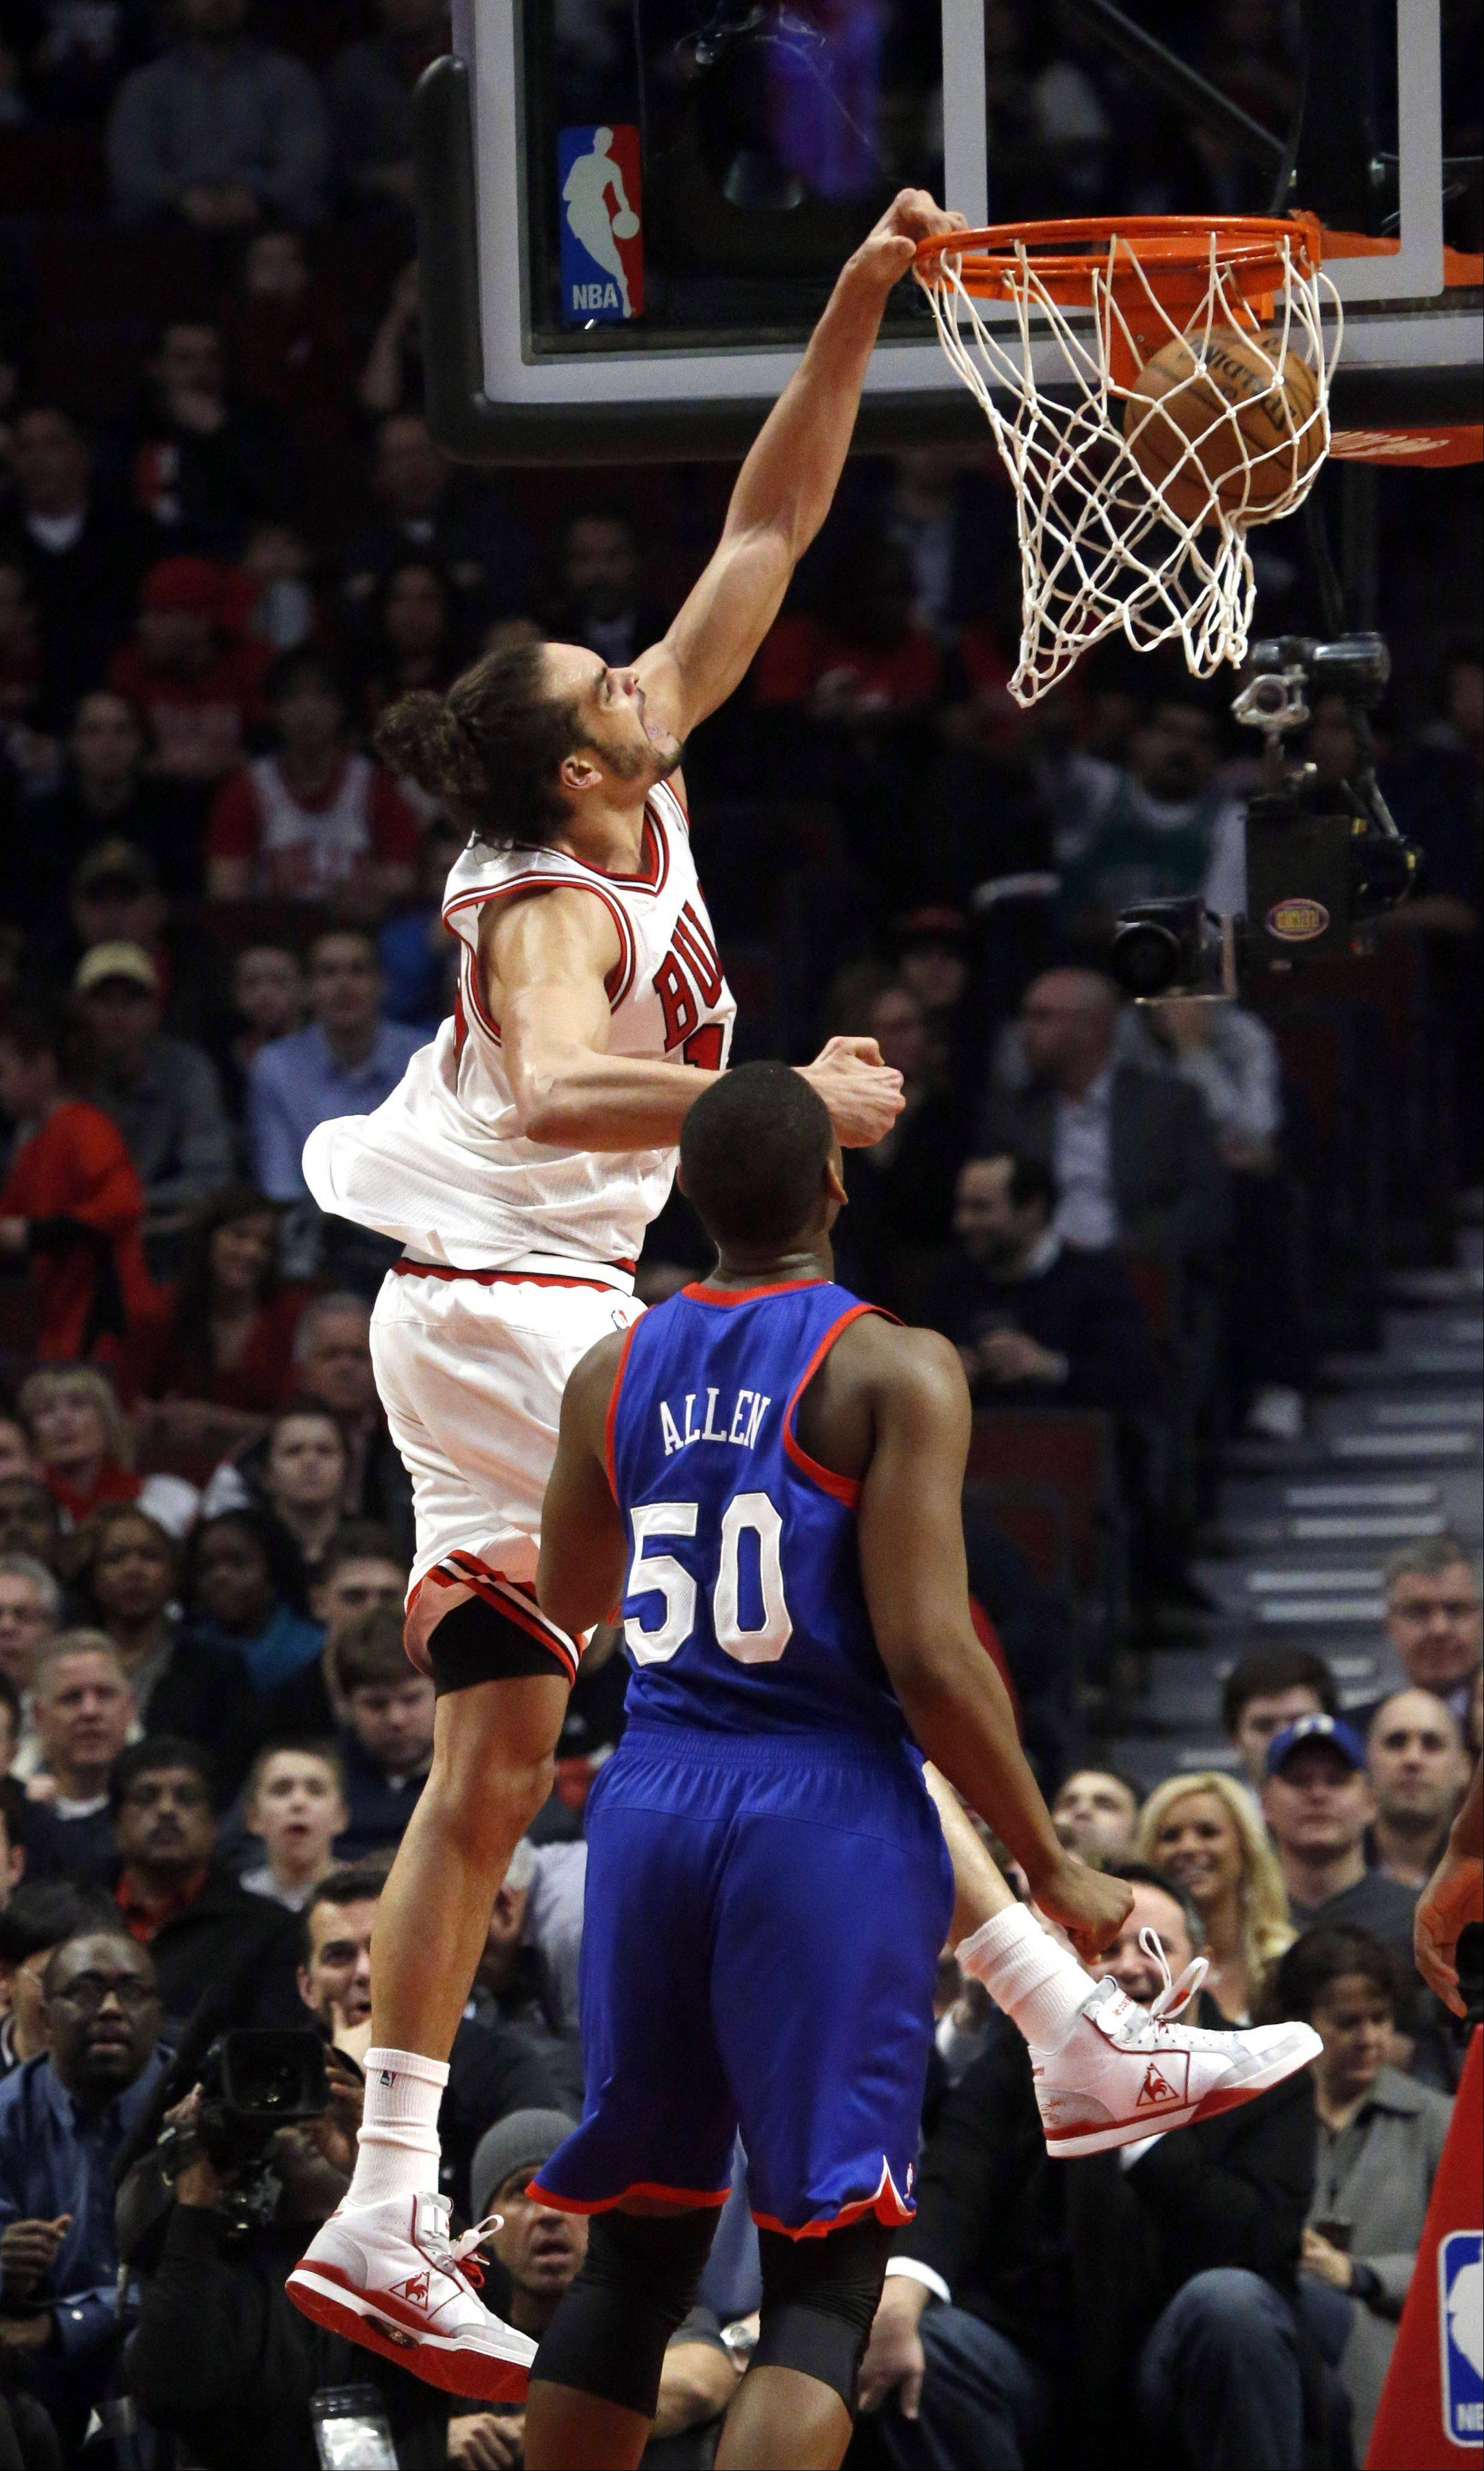 The Bulls� Joakim Noah slams down a pair of points Thursday against the Sixers at the United Center. Noah is the only NBA player to record 23 points, 21 boards, 11 blocks and shoot at least 65 percent from the field (he was 8-for-12) since blocked shots became an official stat in 1973-74.